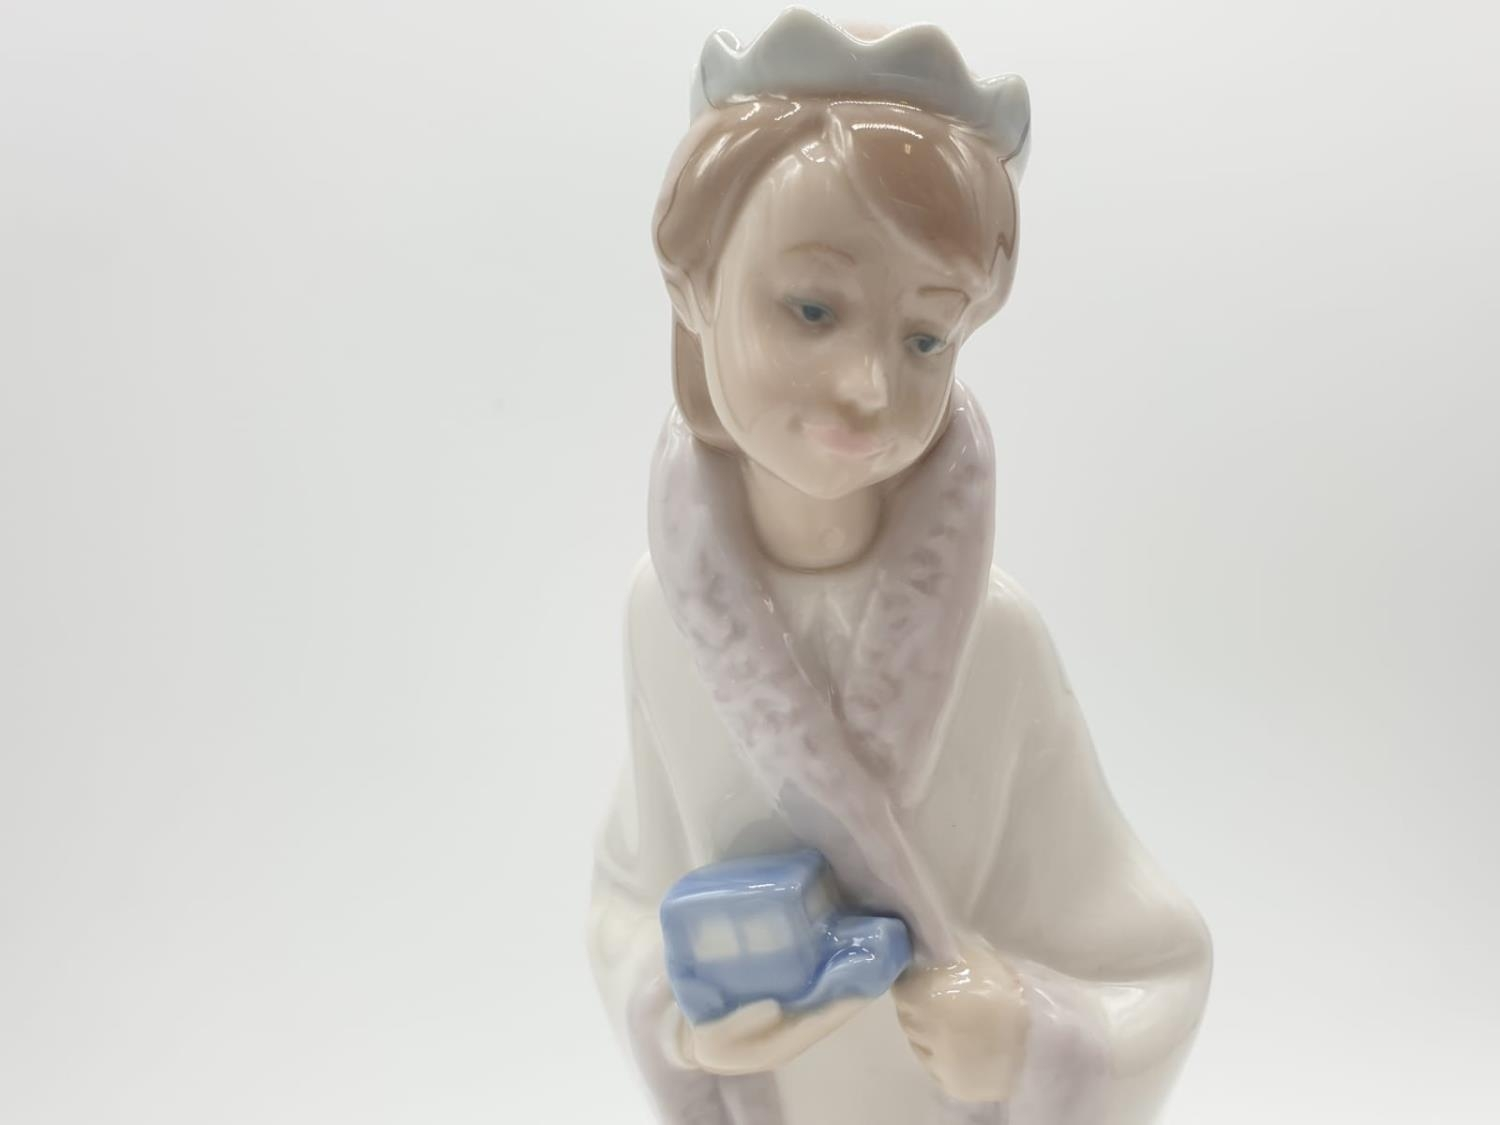 Lladro statue of a young Prince holding a car. 21cm tall. - Image 2 of 6